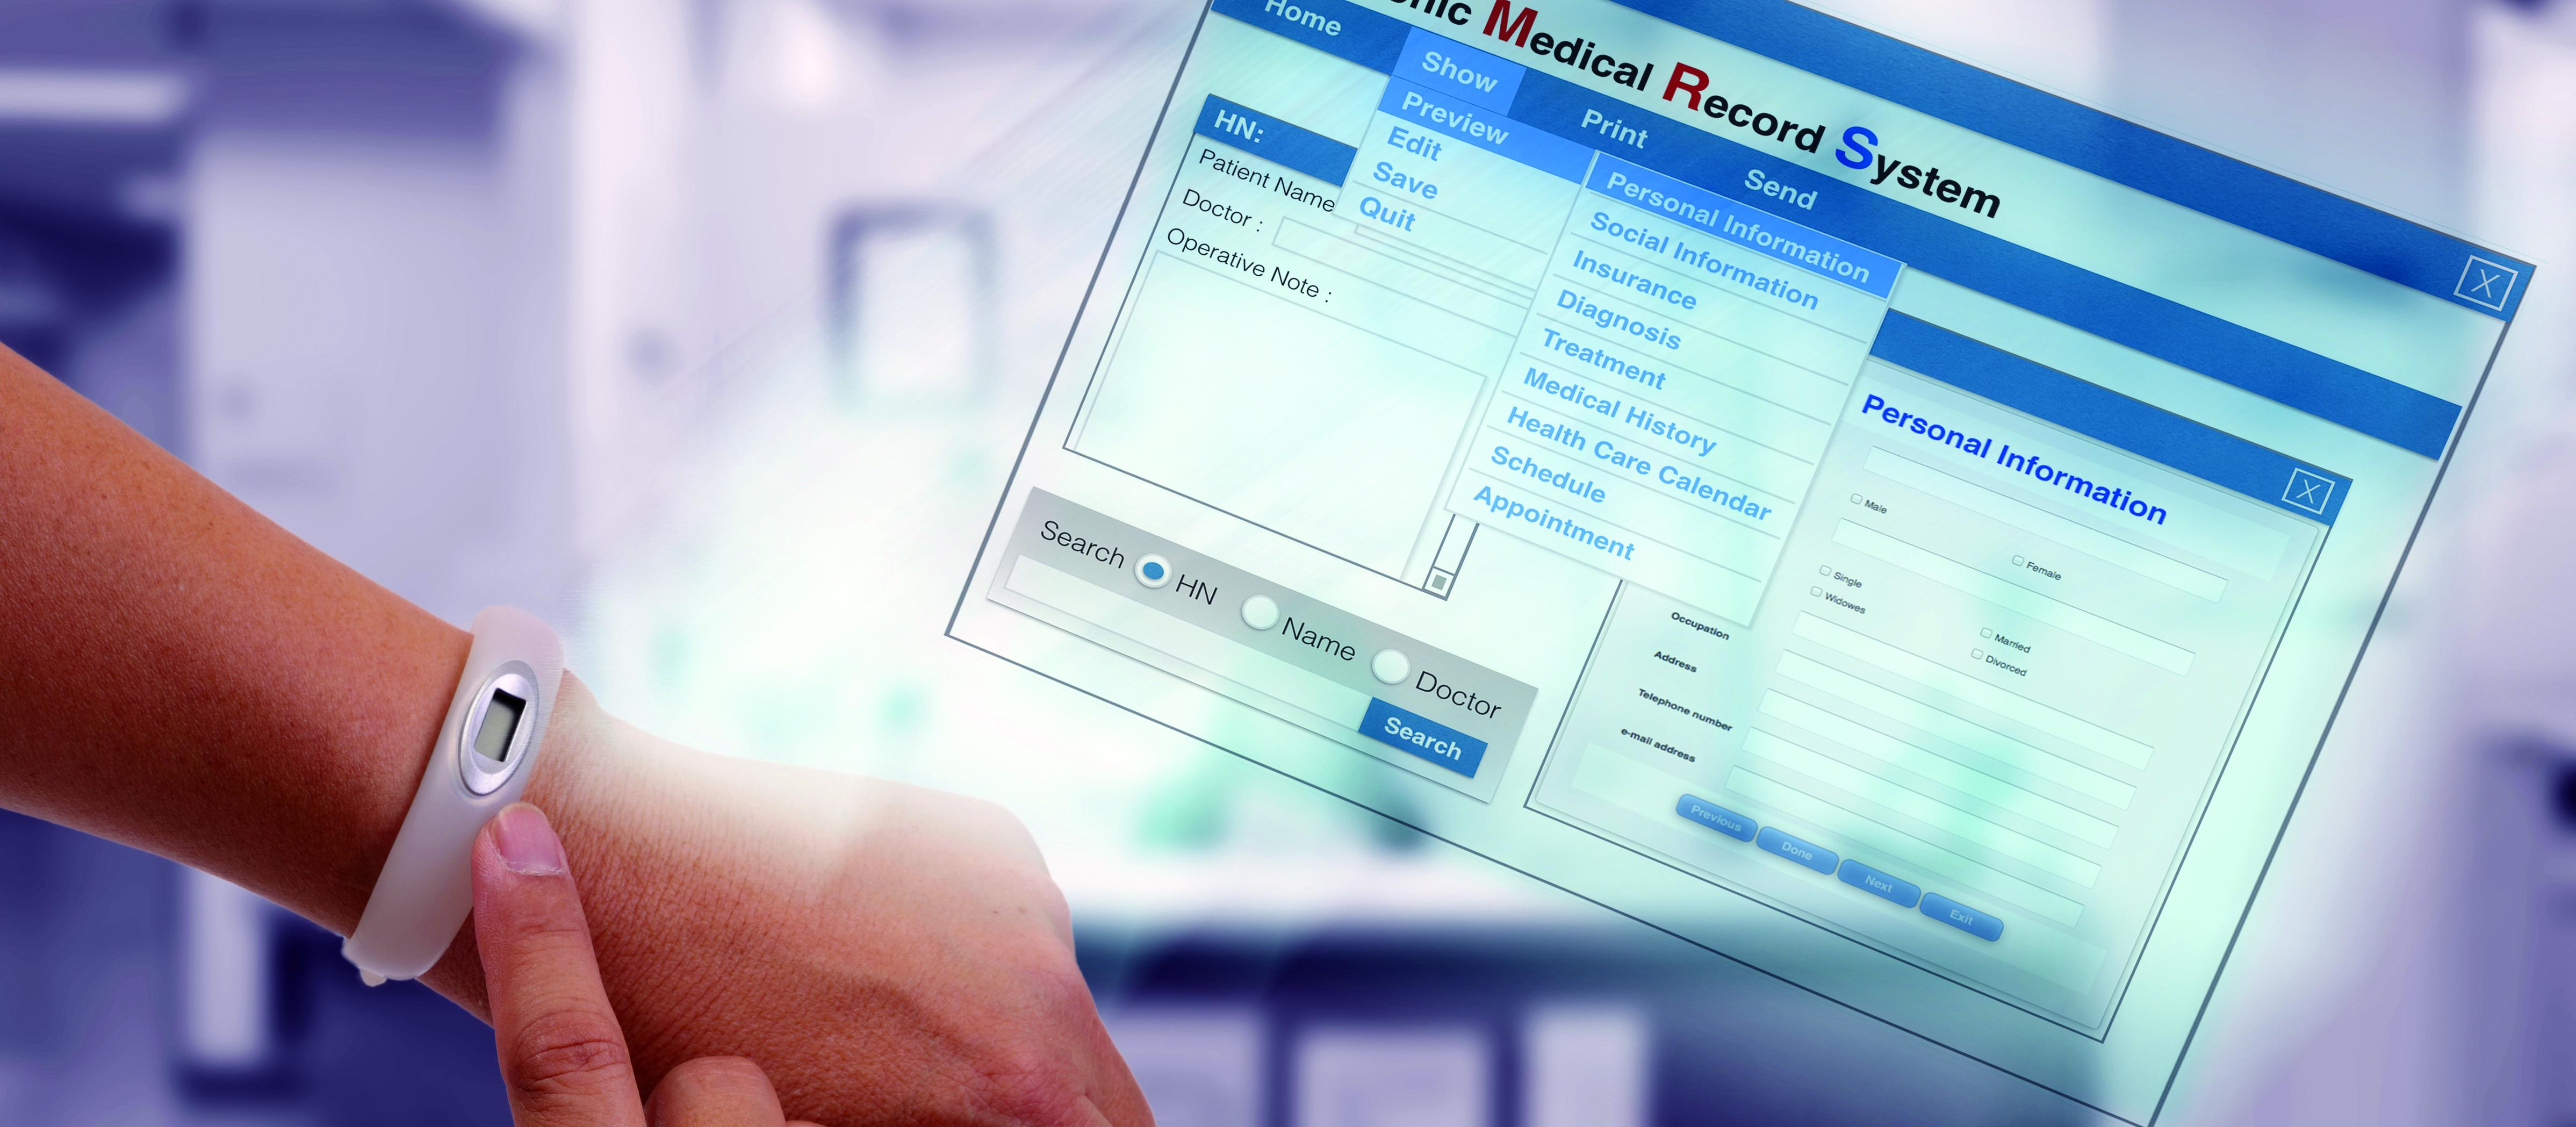 e-health records